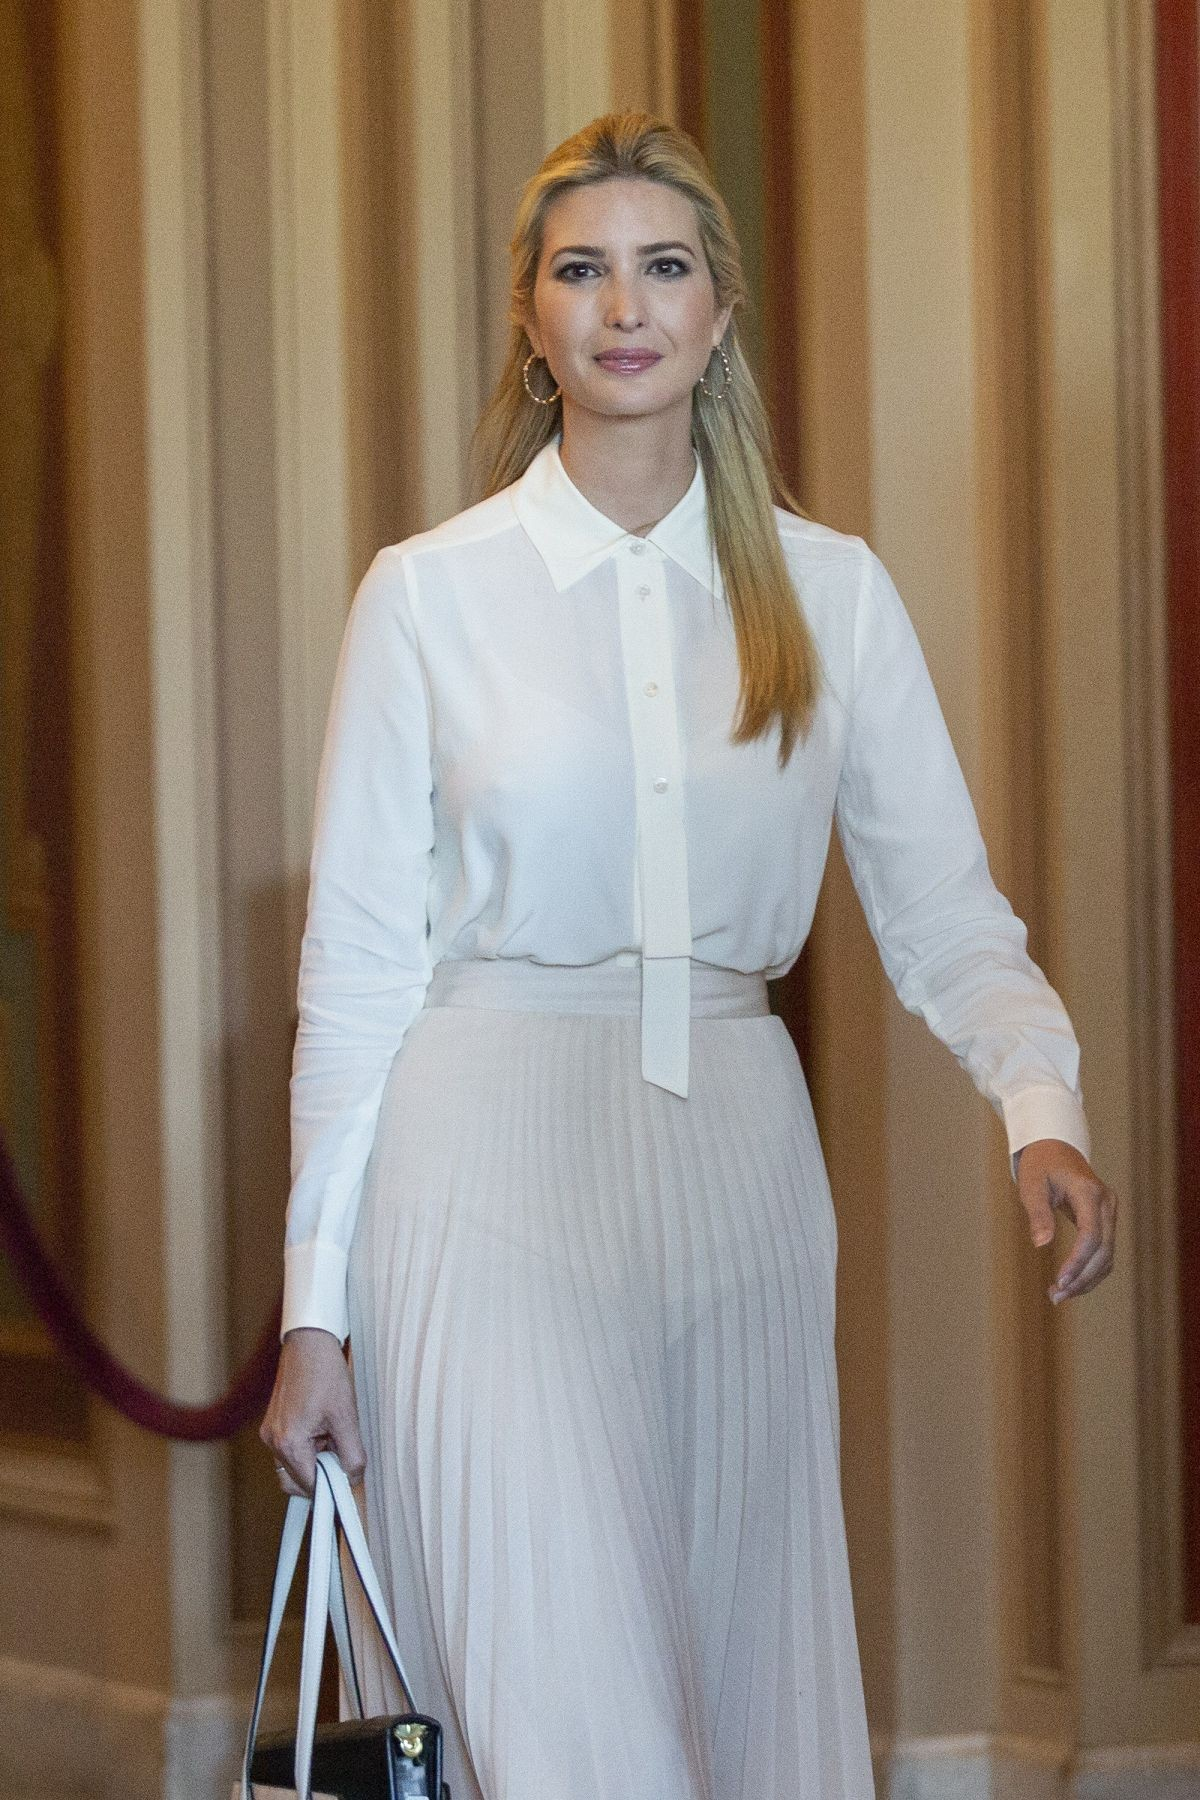 Ivanka Trump at U.S. Capitol Women, Peace and Security in Washington D.C. 2019/06/11 6